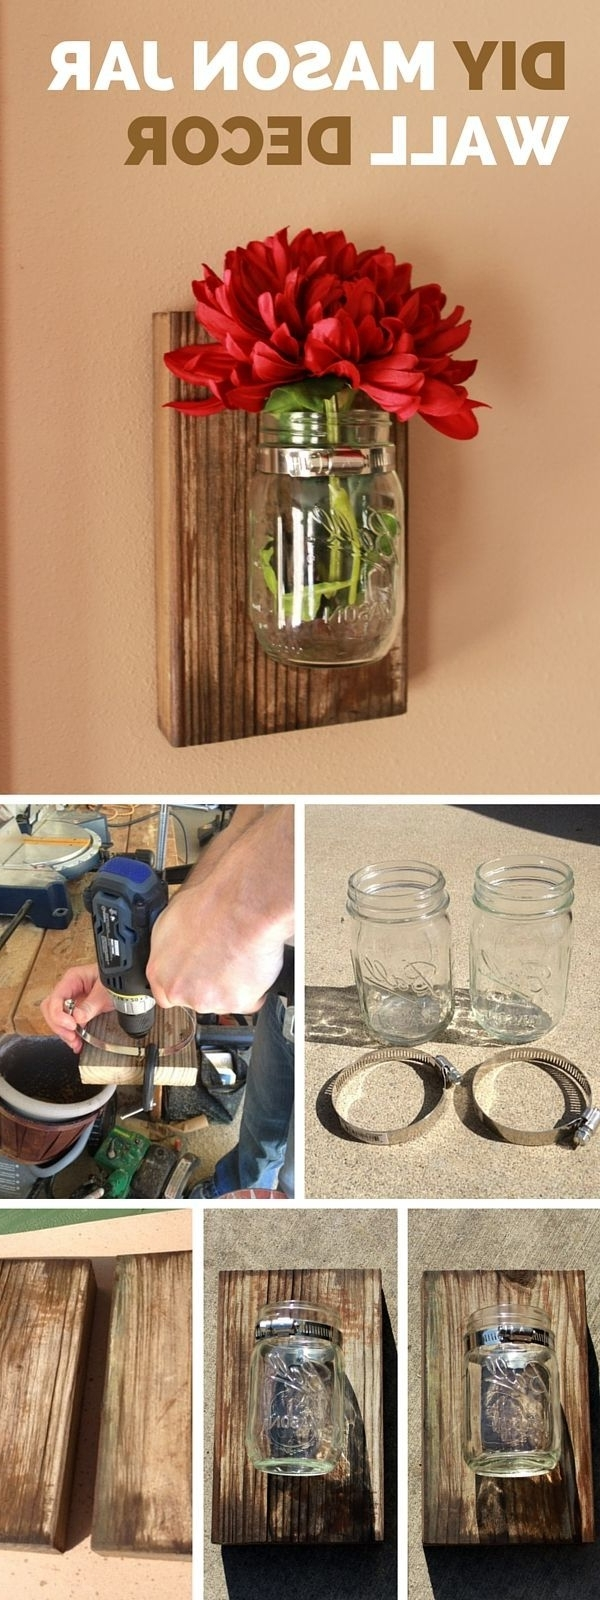 Well Known Mason Jar Wall Art Within Check Out The Tutorial: #diy Mason Jar Wall Decor #crafts #homedecor (View 15 of 15)